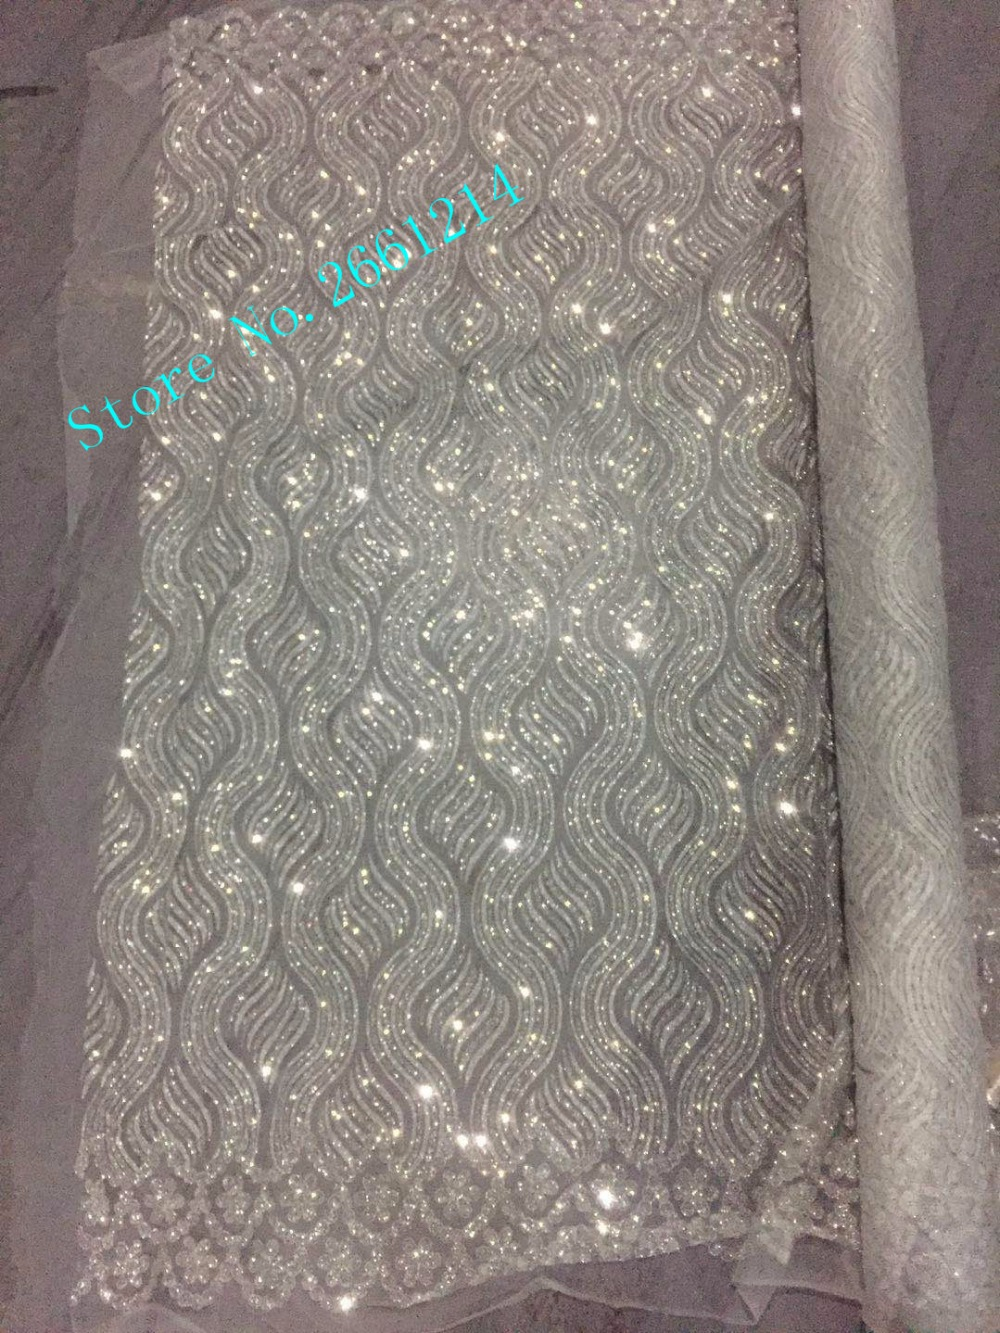 Silver glitter mesh african indian lace fabric BZL 81201 for wedding  evening  dress-in Fabric from Home   Garden on Aliexpress.com  f48947cfb71f